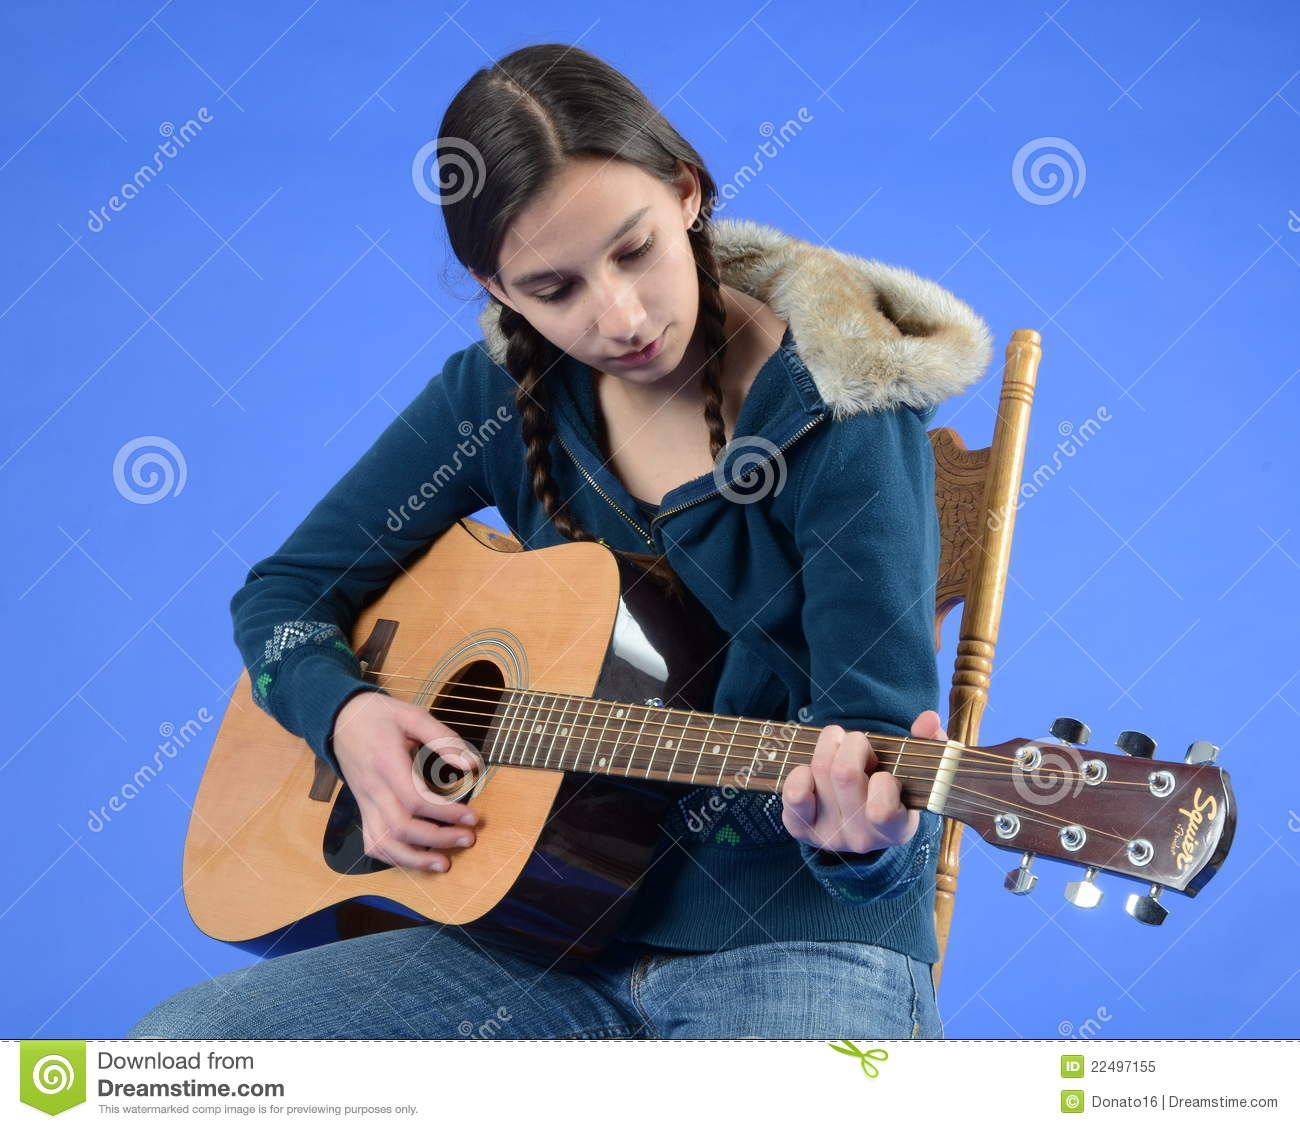 guitar playing chair victorian velvet teen girl in royalty free stock photo